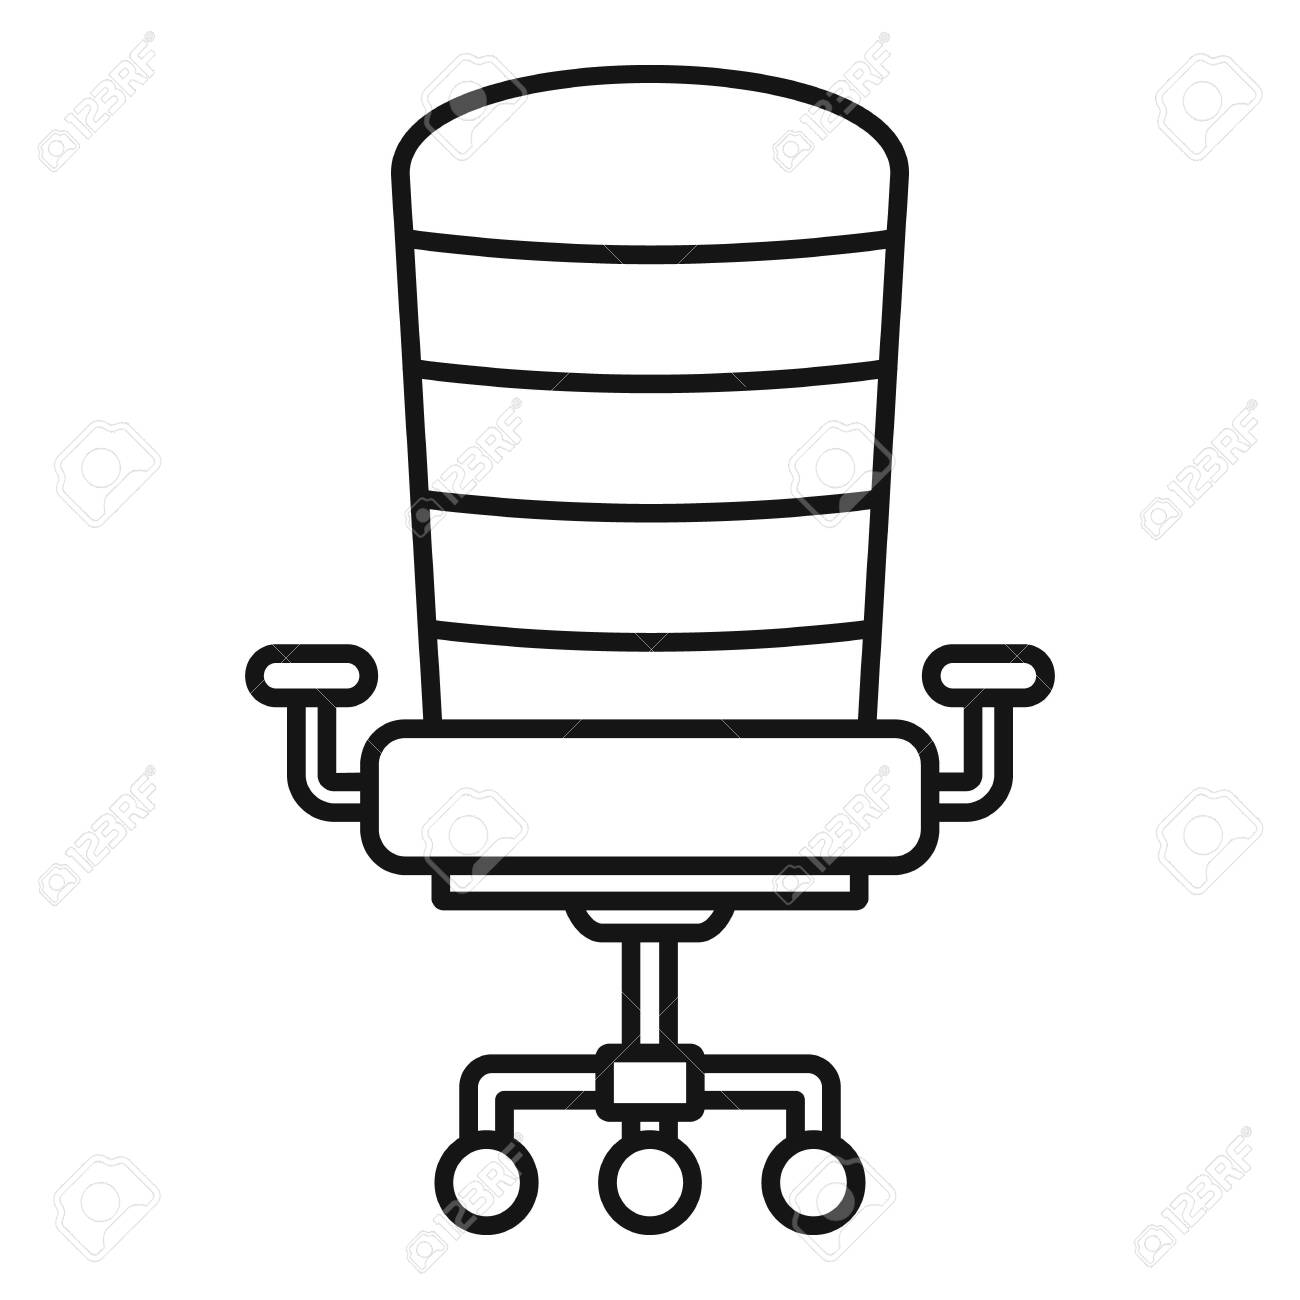 Peachy Modern Desk Chair Icon Outline Modern Desk Chair Vector Icon Onthecornerstone Fun Painted Chair Ideas Images Onthecornerstoneorg